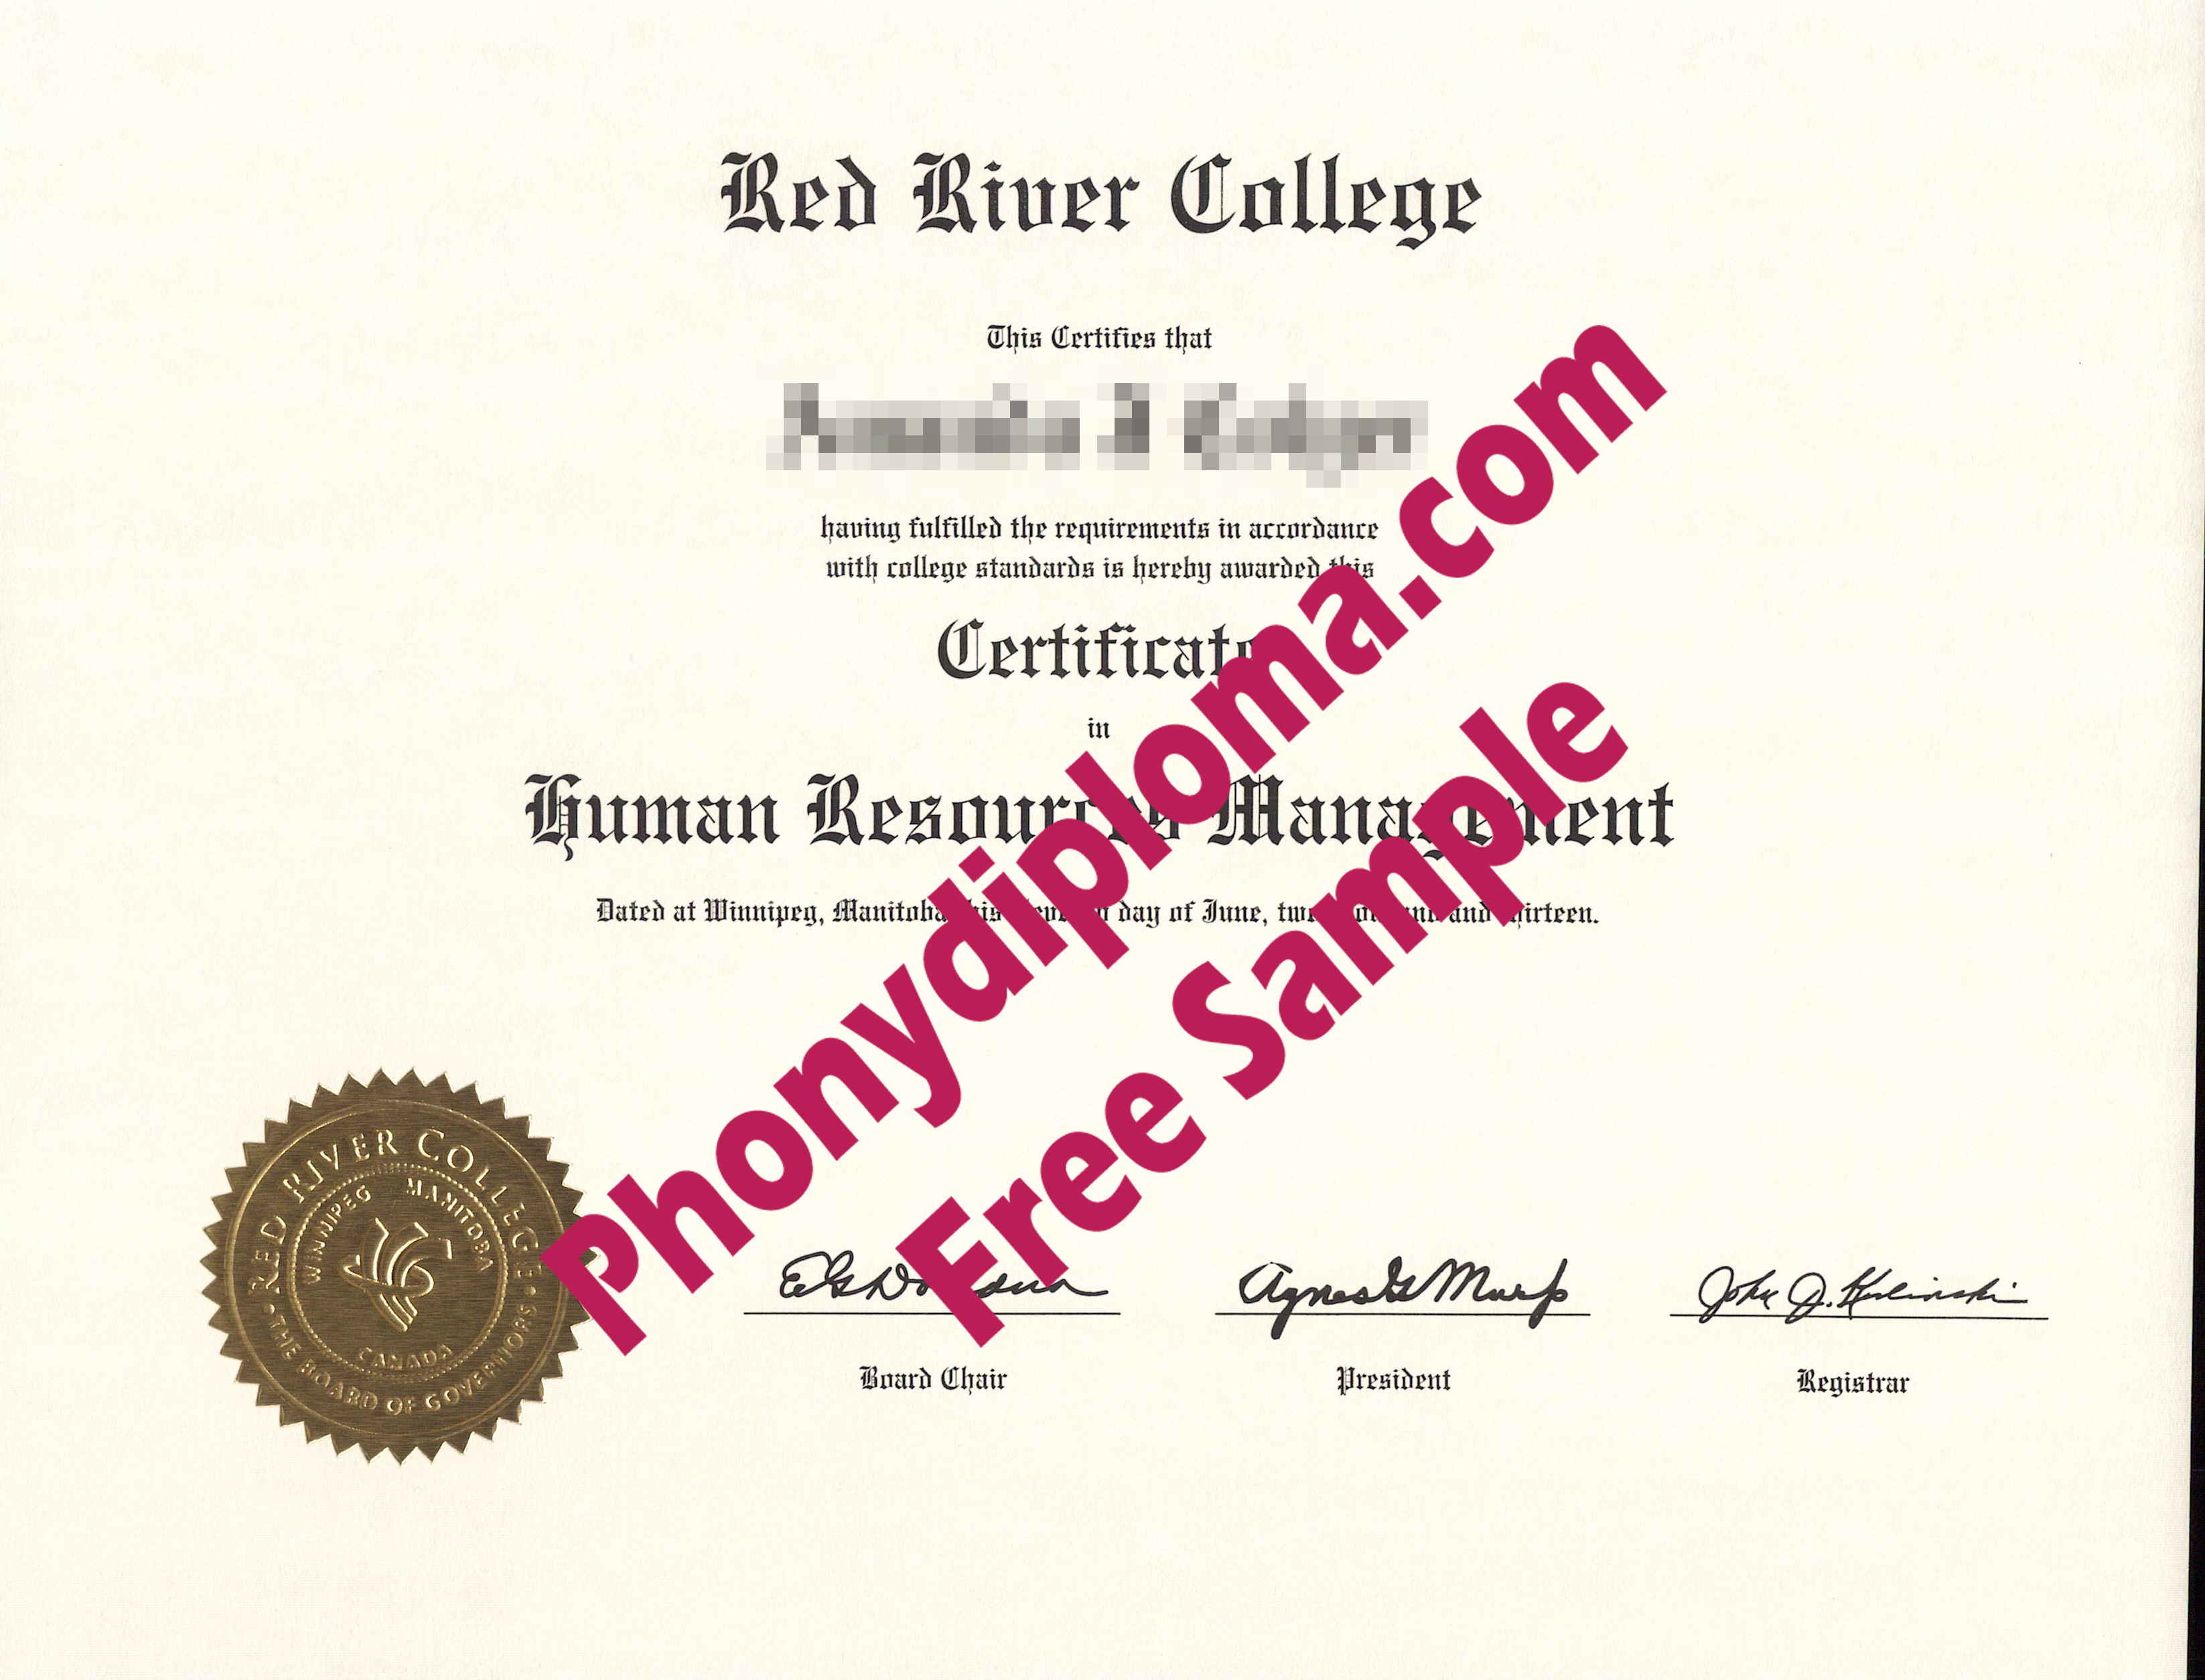 Red River College Certificate Free Sample From Phonydiploma